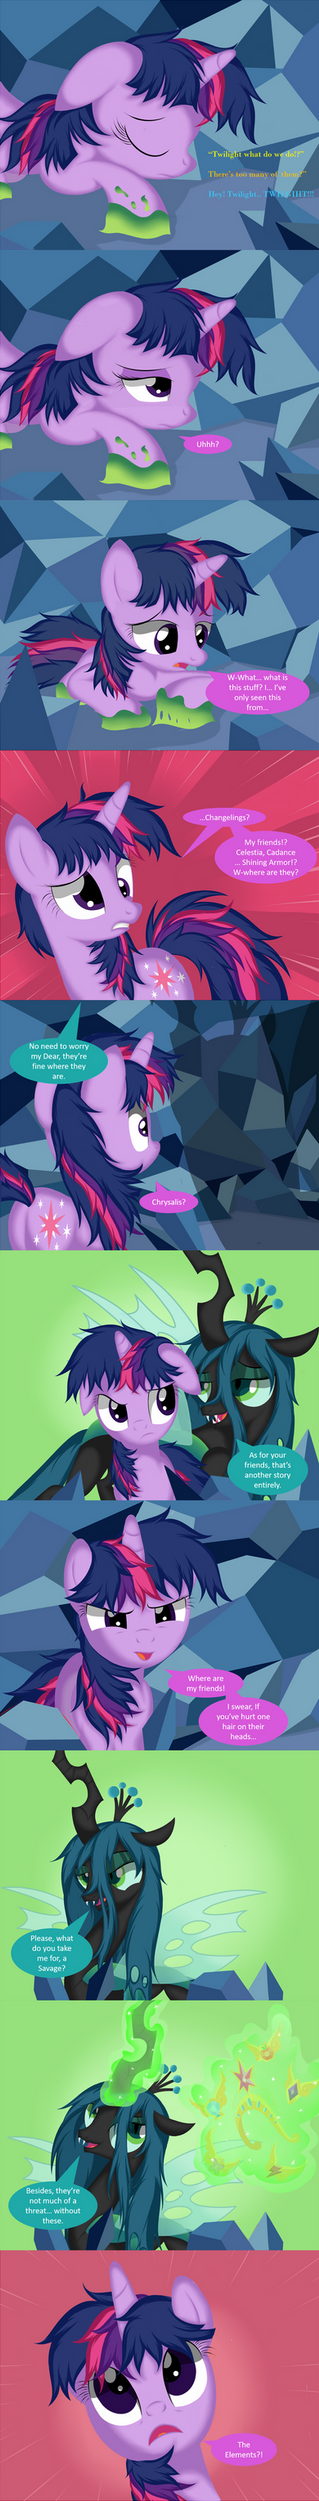 The Chryistening (Part 1-3) by Law44444